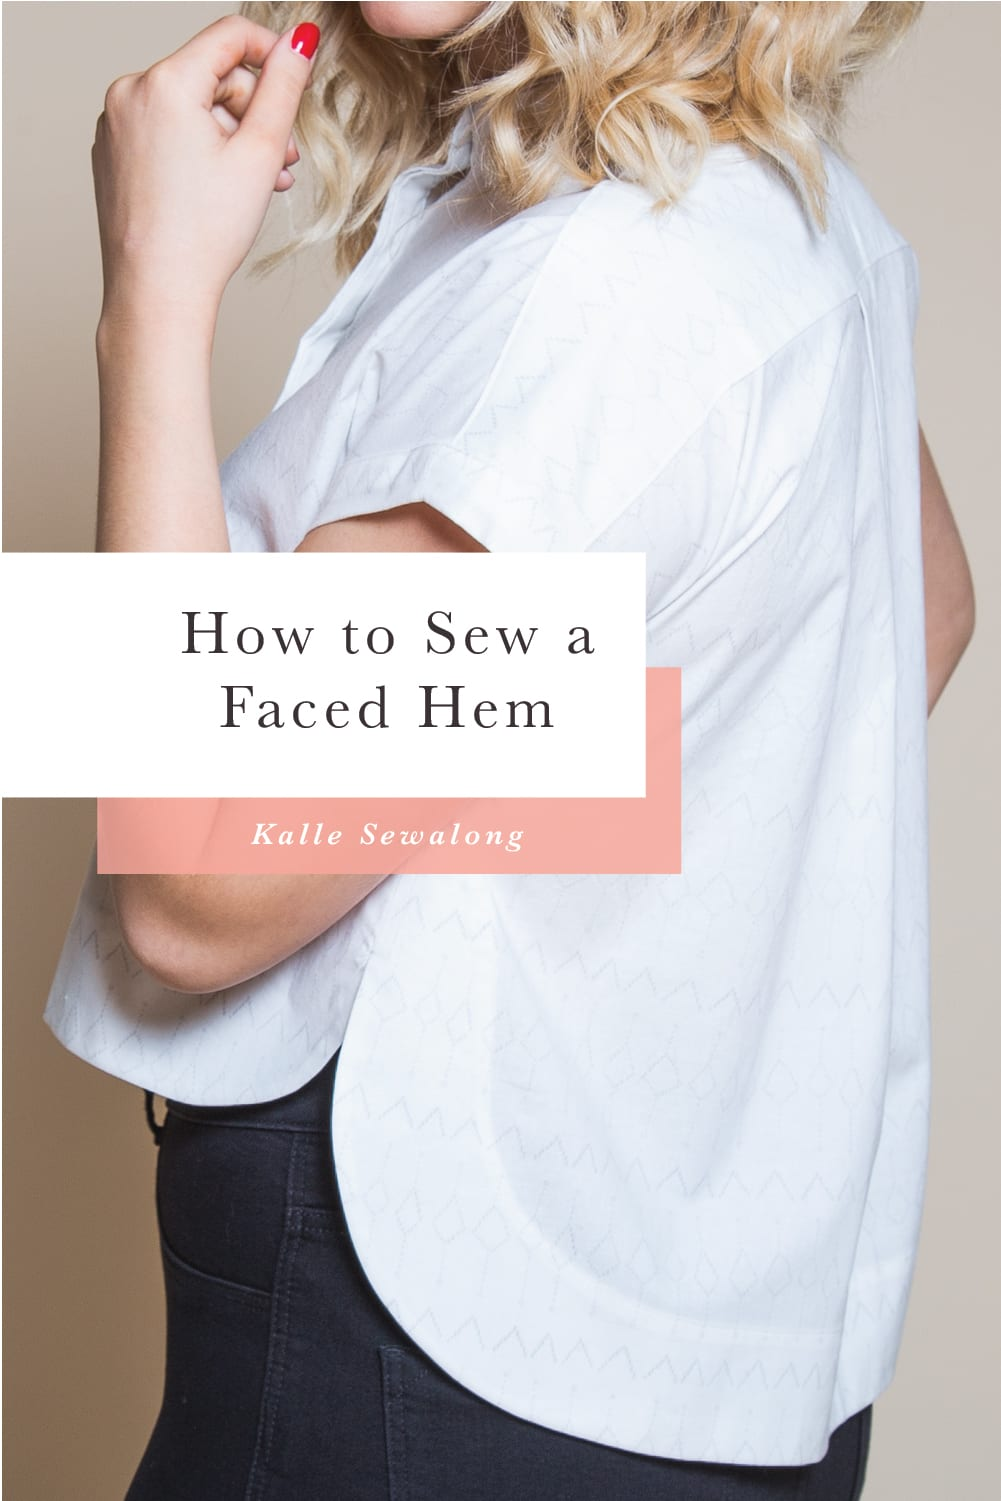 How to sew a curved faced hem // Kalle Sewalong // Closet Case Patterns